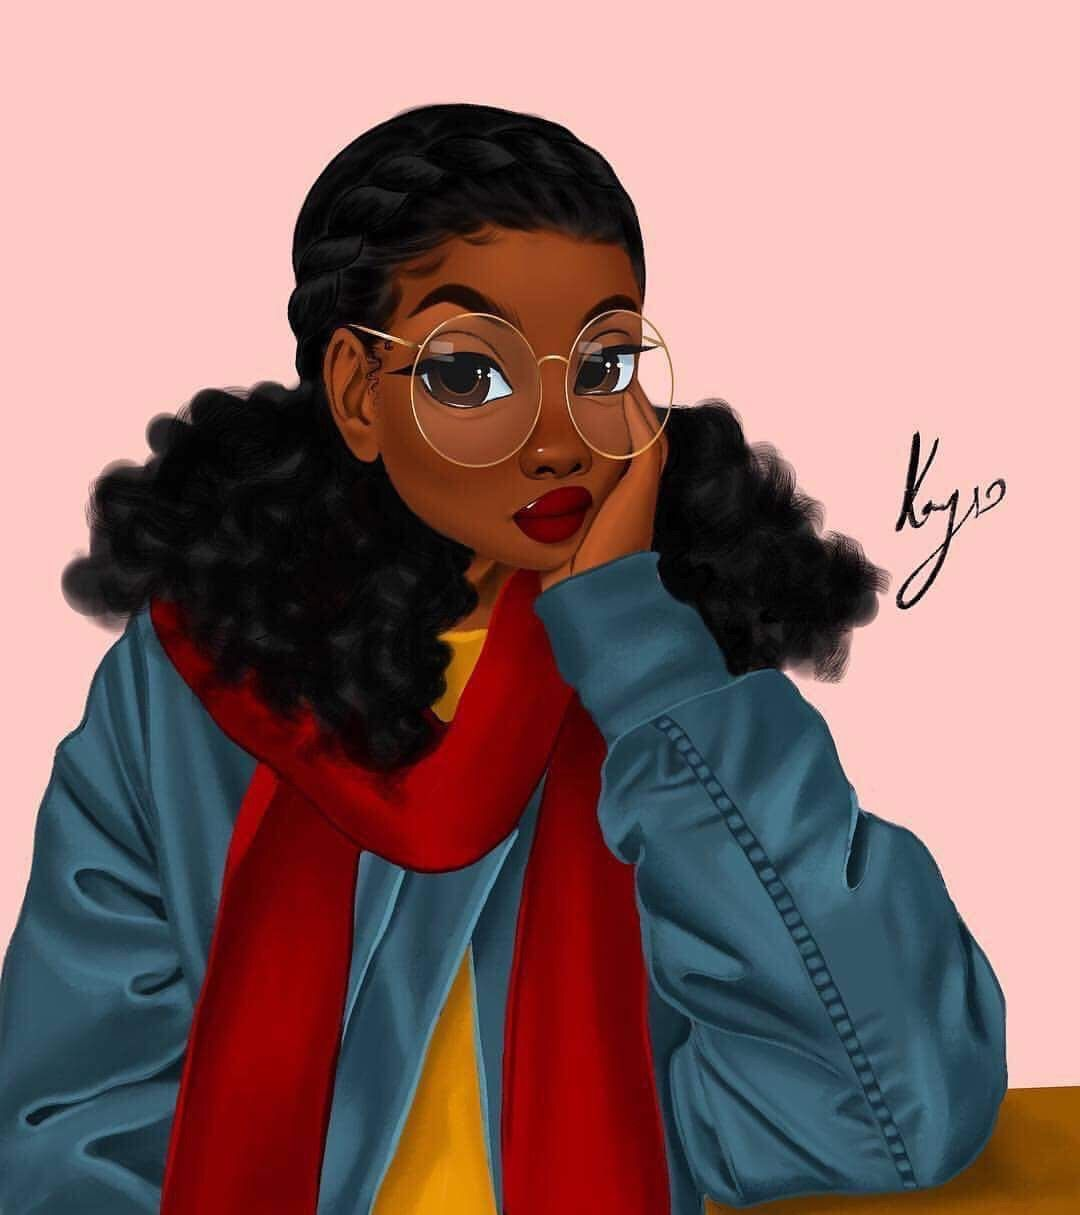 One Of Coolest Things About This Illustration Is Her Glasses And Scarf She Looks Like She Goes To Hogwarts Black Girl Cartoon Black Girl Art Black Love Art